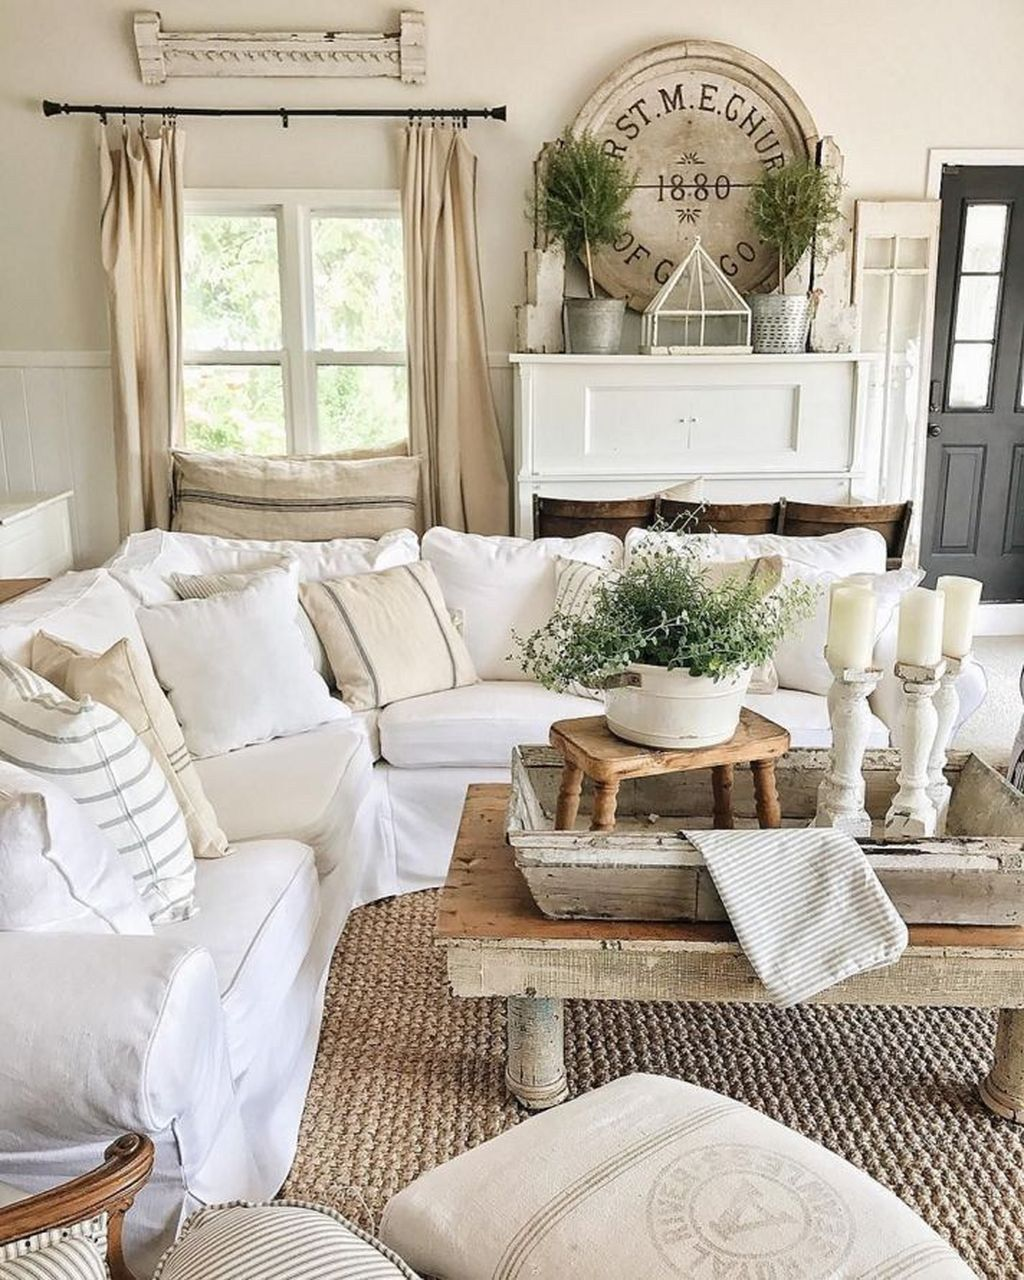 Farmhouse Chic Living Room Decor: 46 Cozy Farmhouse Living Room Decor Ideas That Make You